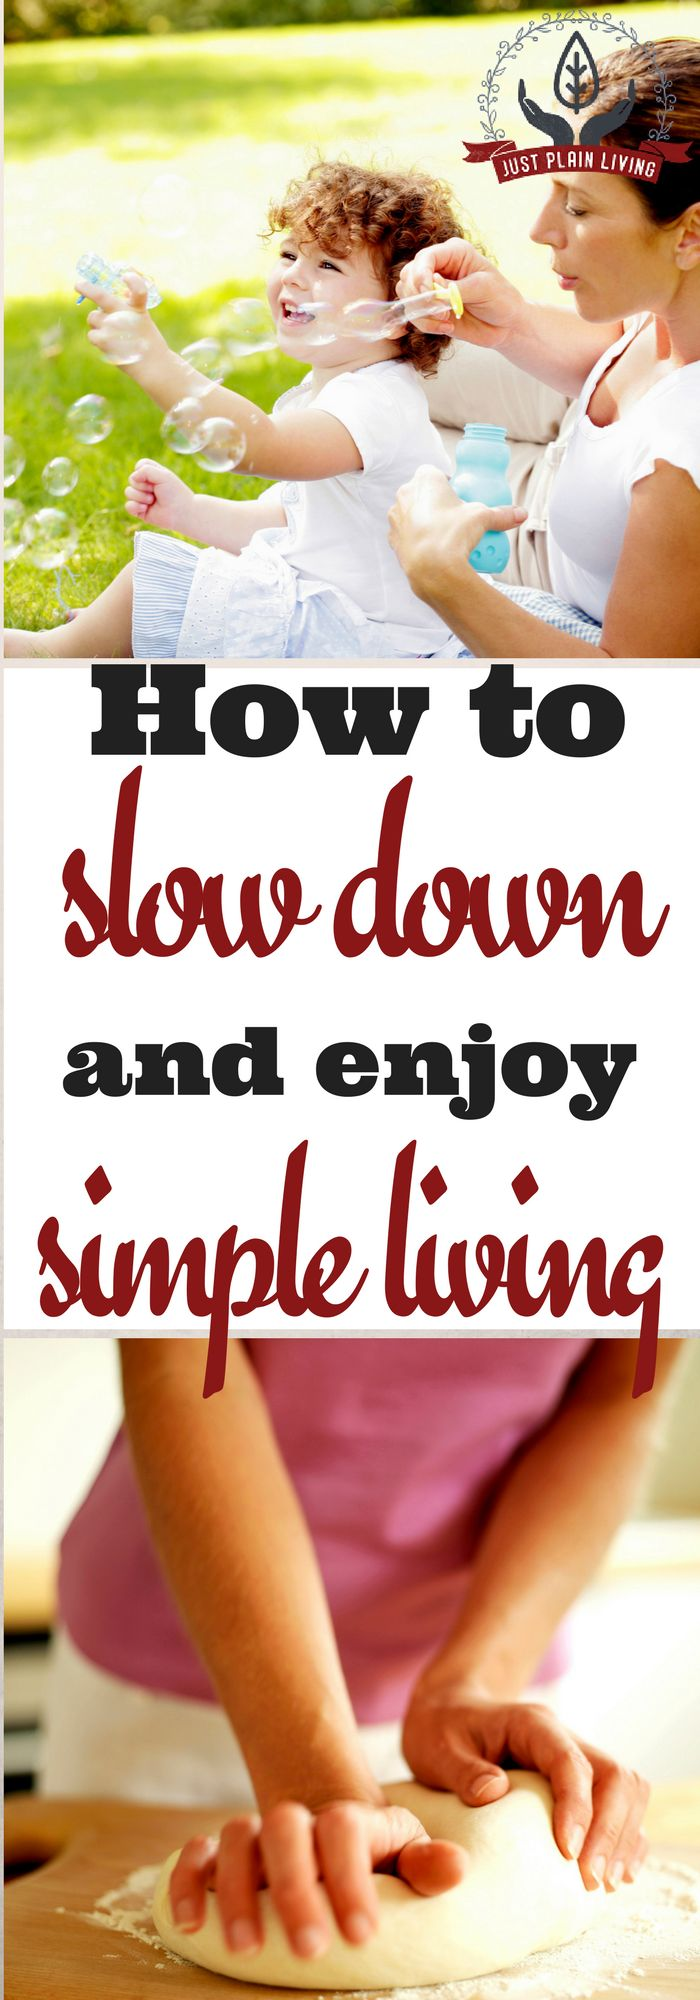 Entire books have been written on how to slow down, enjoy simple pleasures, and lead a simple lifestyle. Get started with a few simple changes.